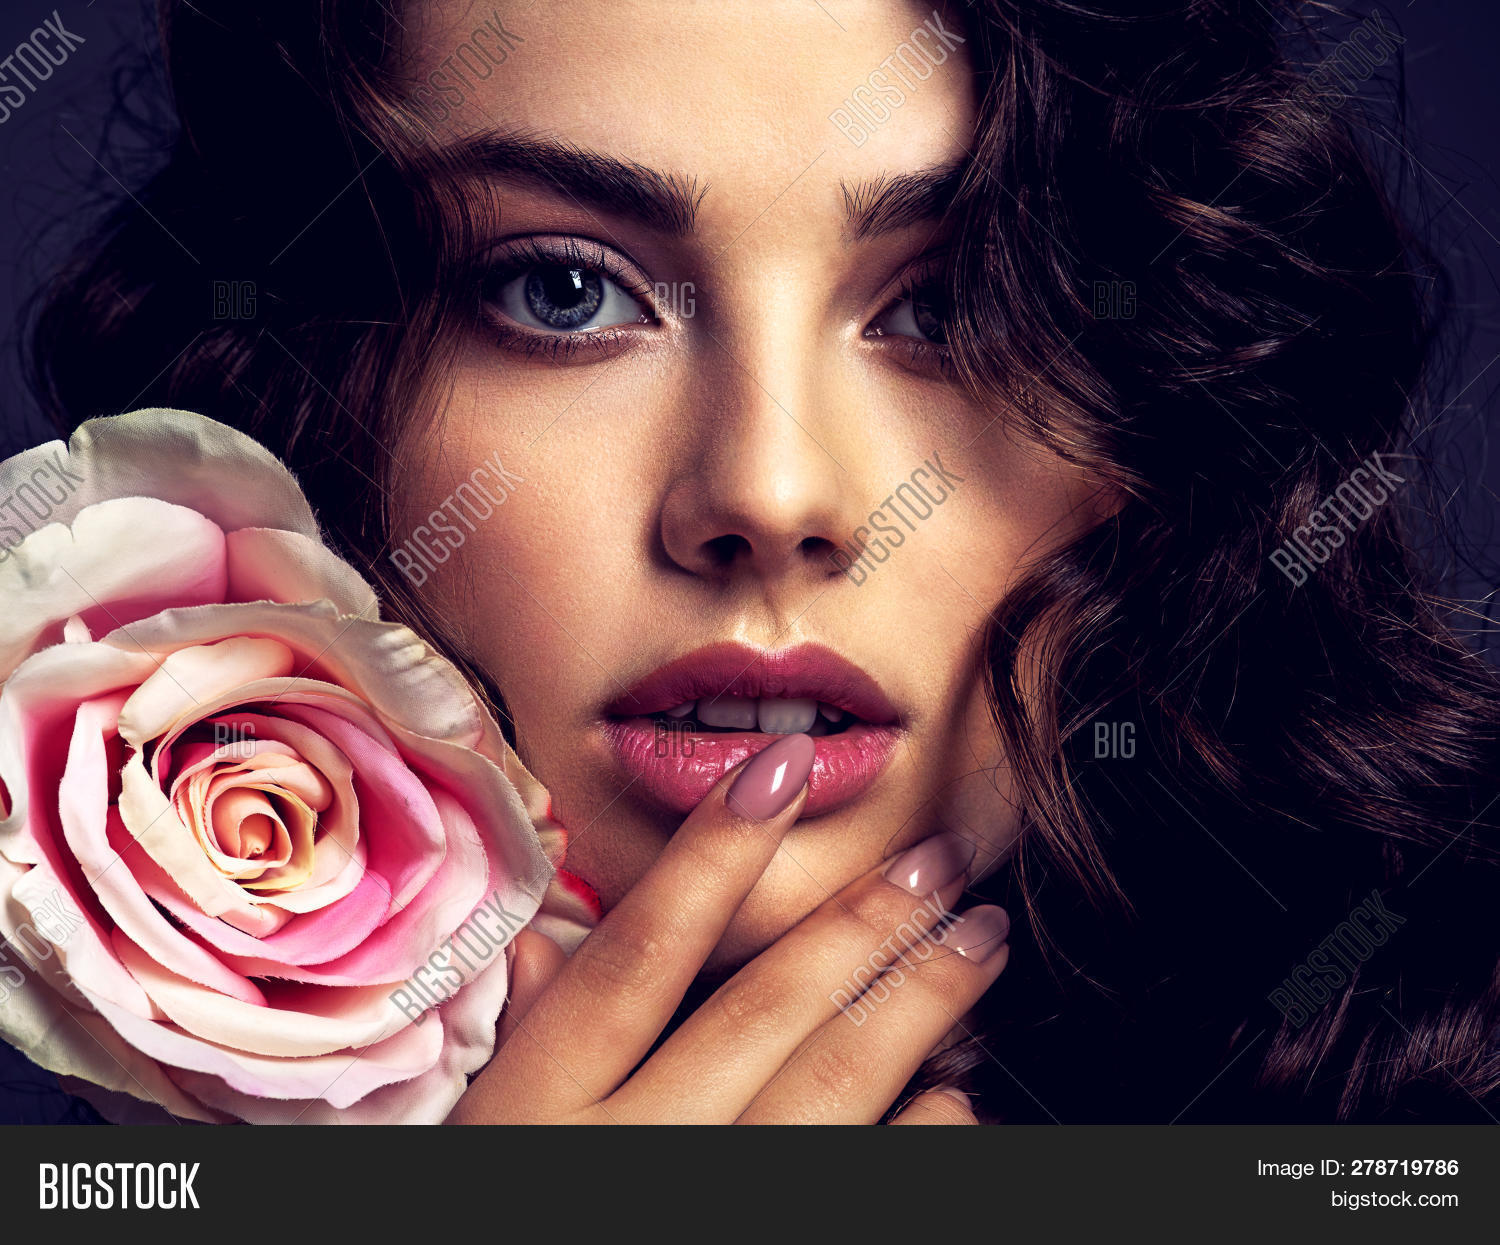 Beautiful Face Young Image Photo Free Trial Bigstock